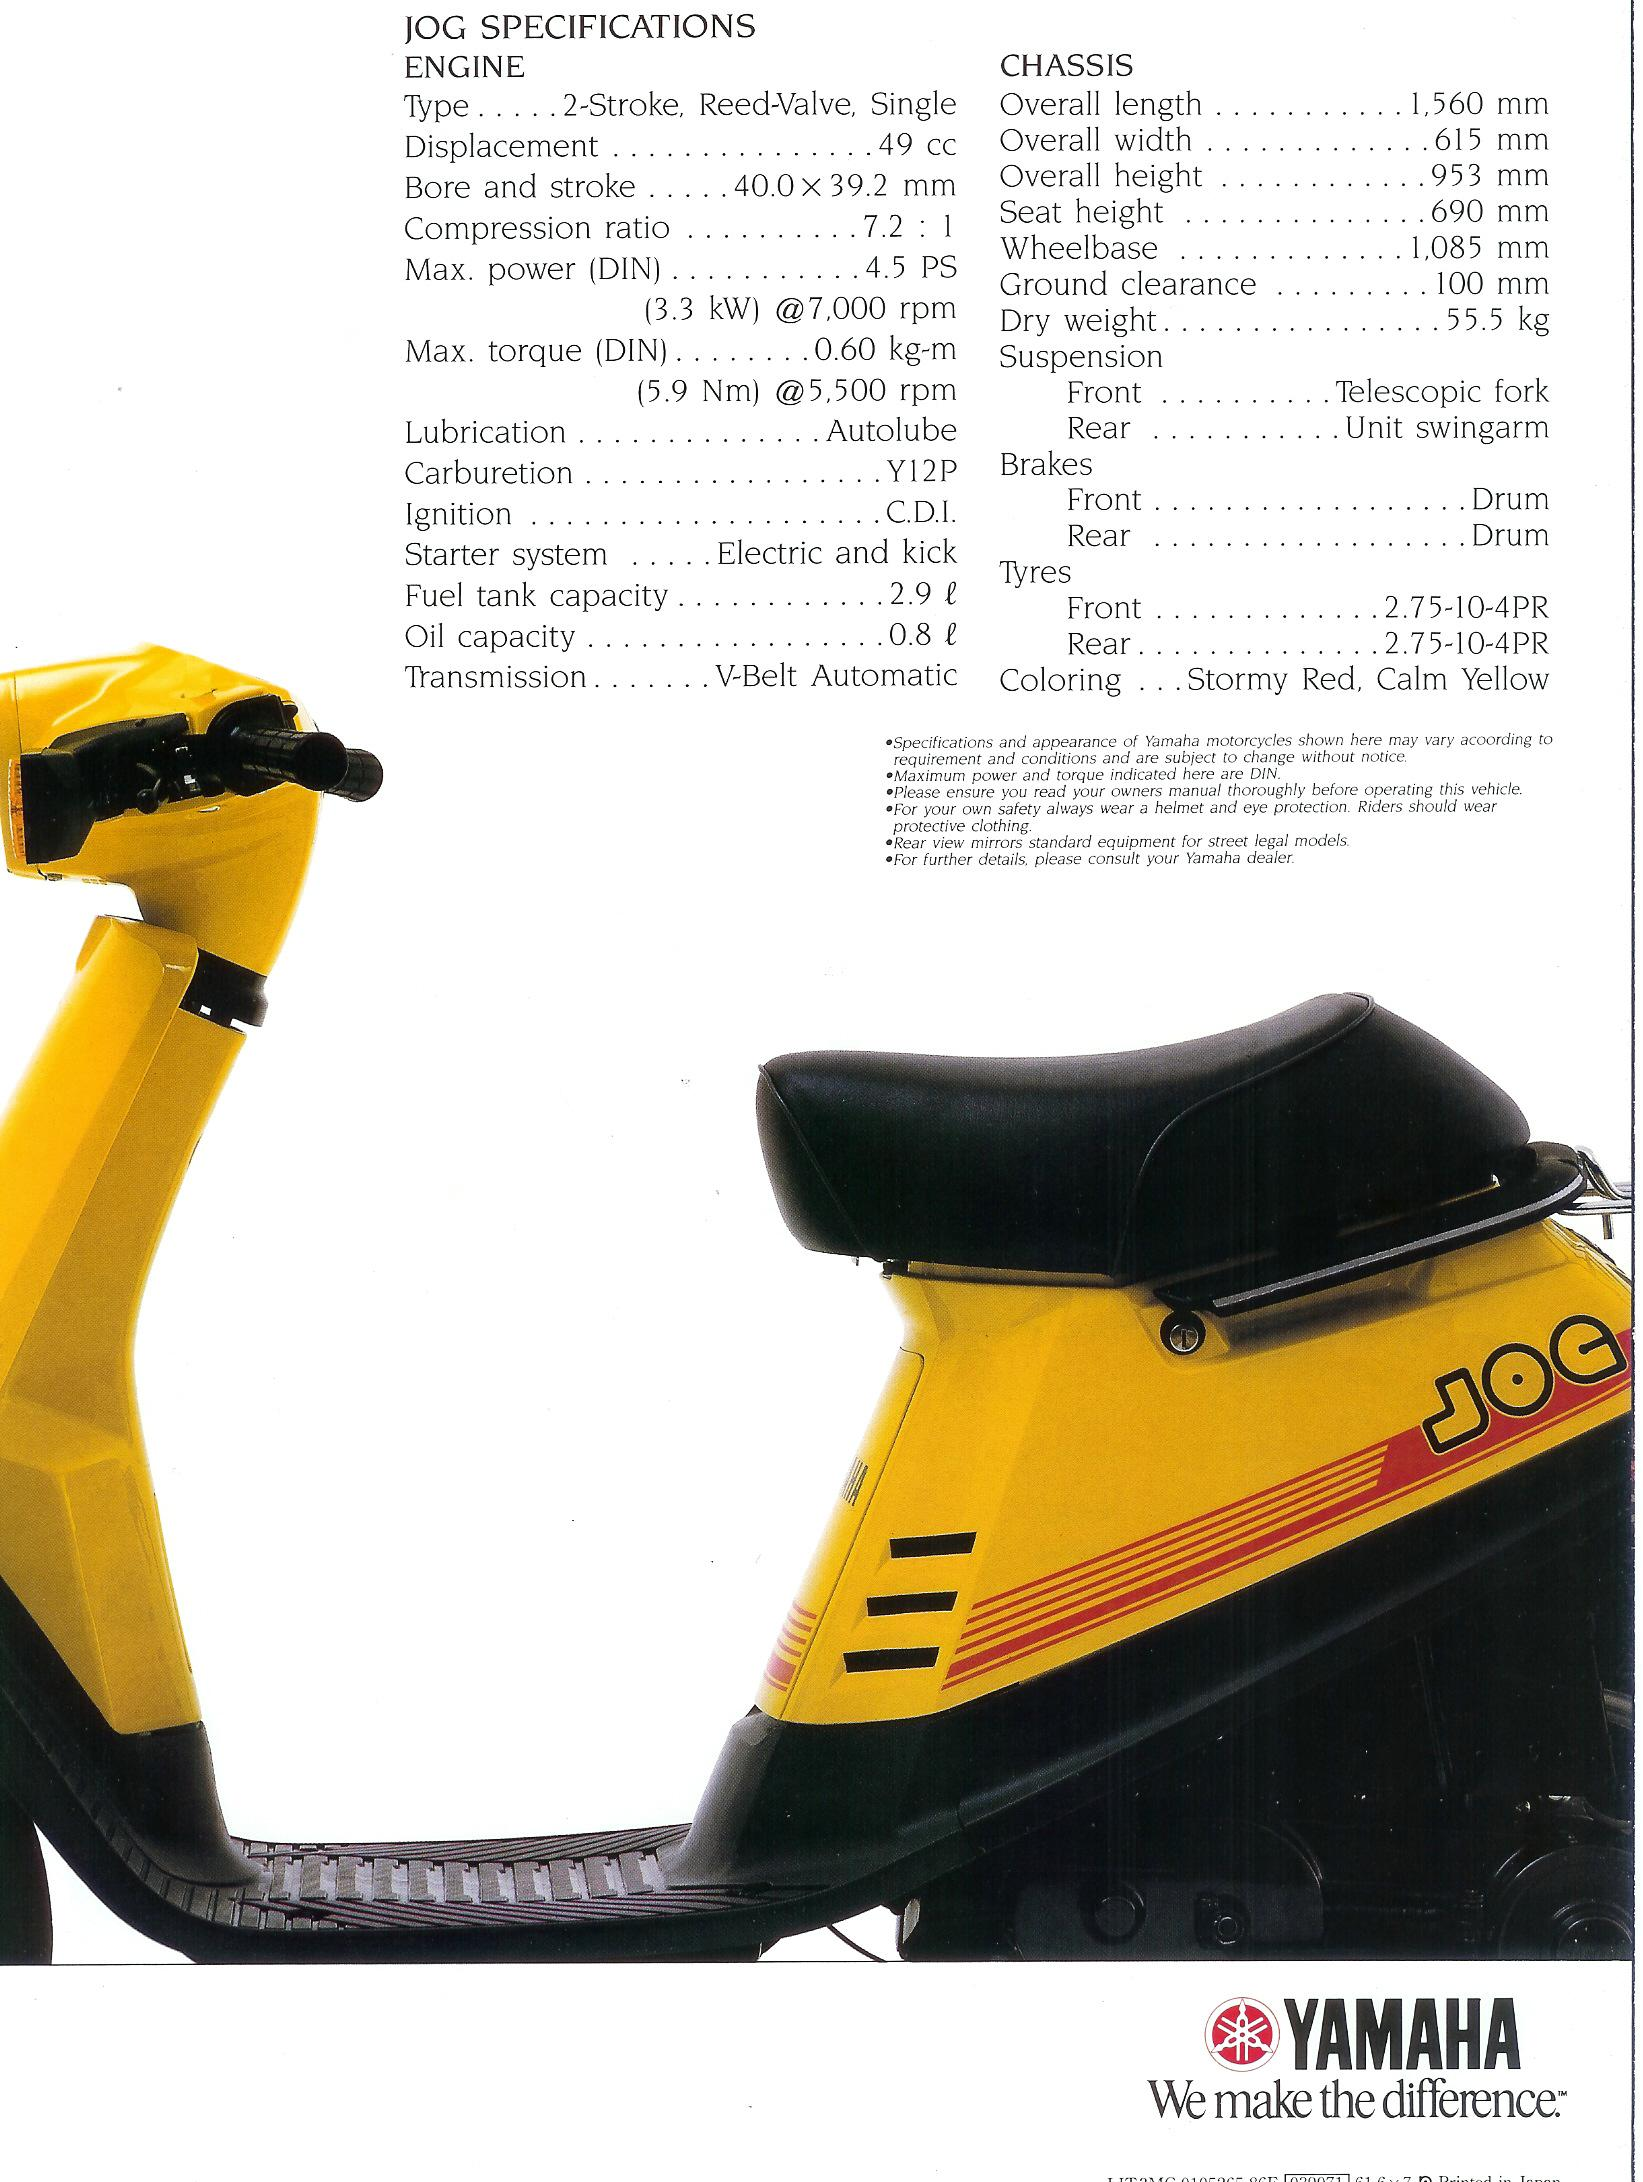 General Yamaha Scooter Information 2000 50 Hp 4 Stroke Wiring Diagram